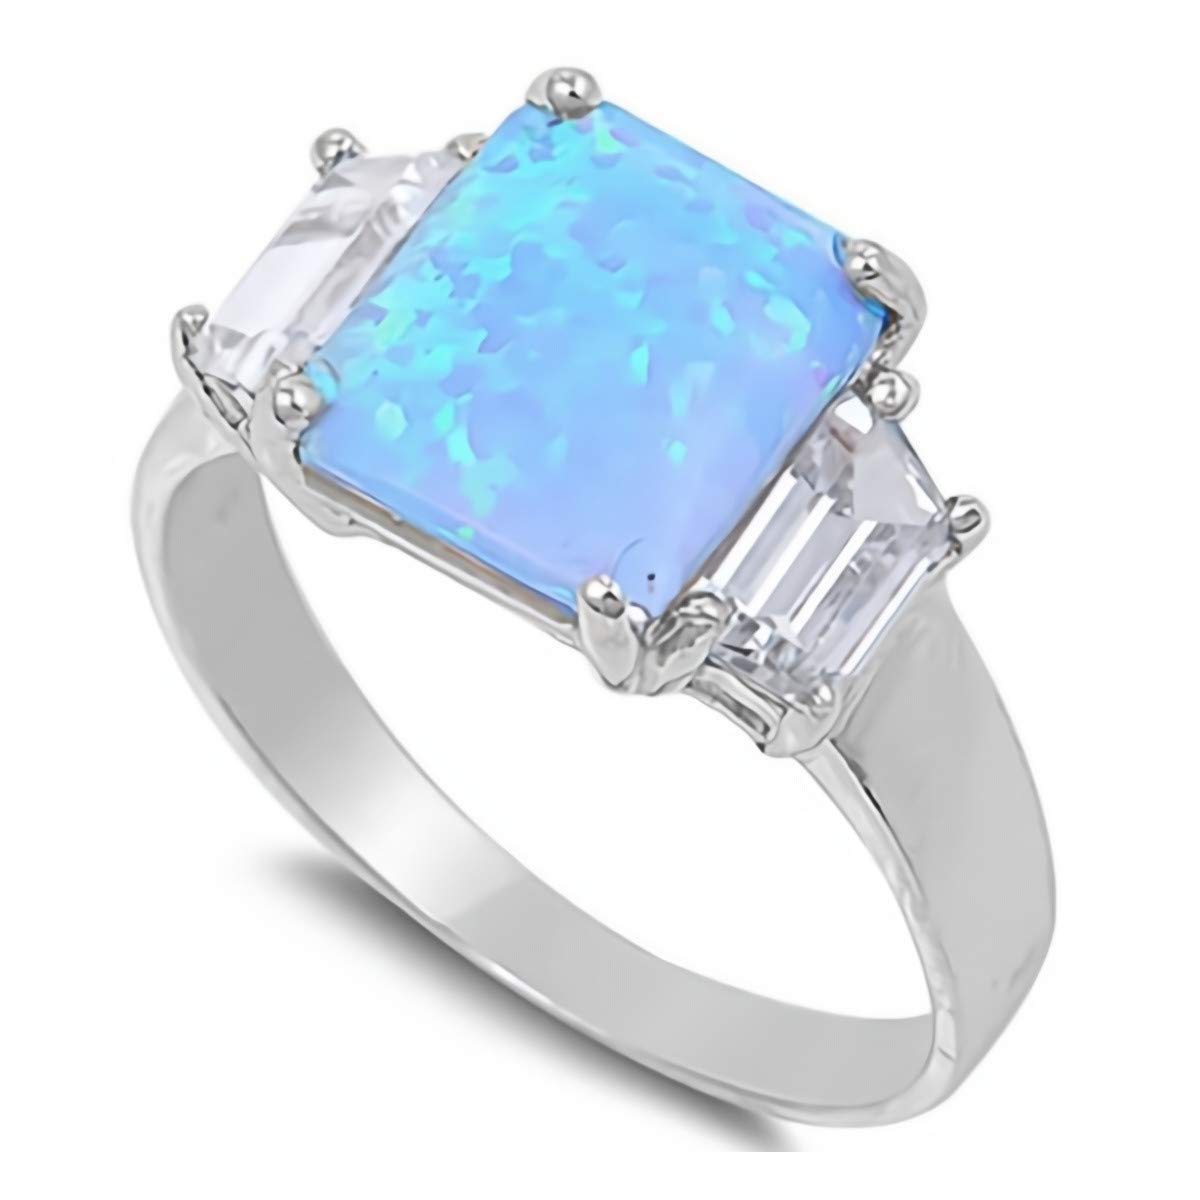 Glitzs Jewels 925 Sterling Silver Created Opal Ring Light Blue With Clear CZ Jewelry Gift for Women